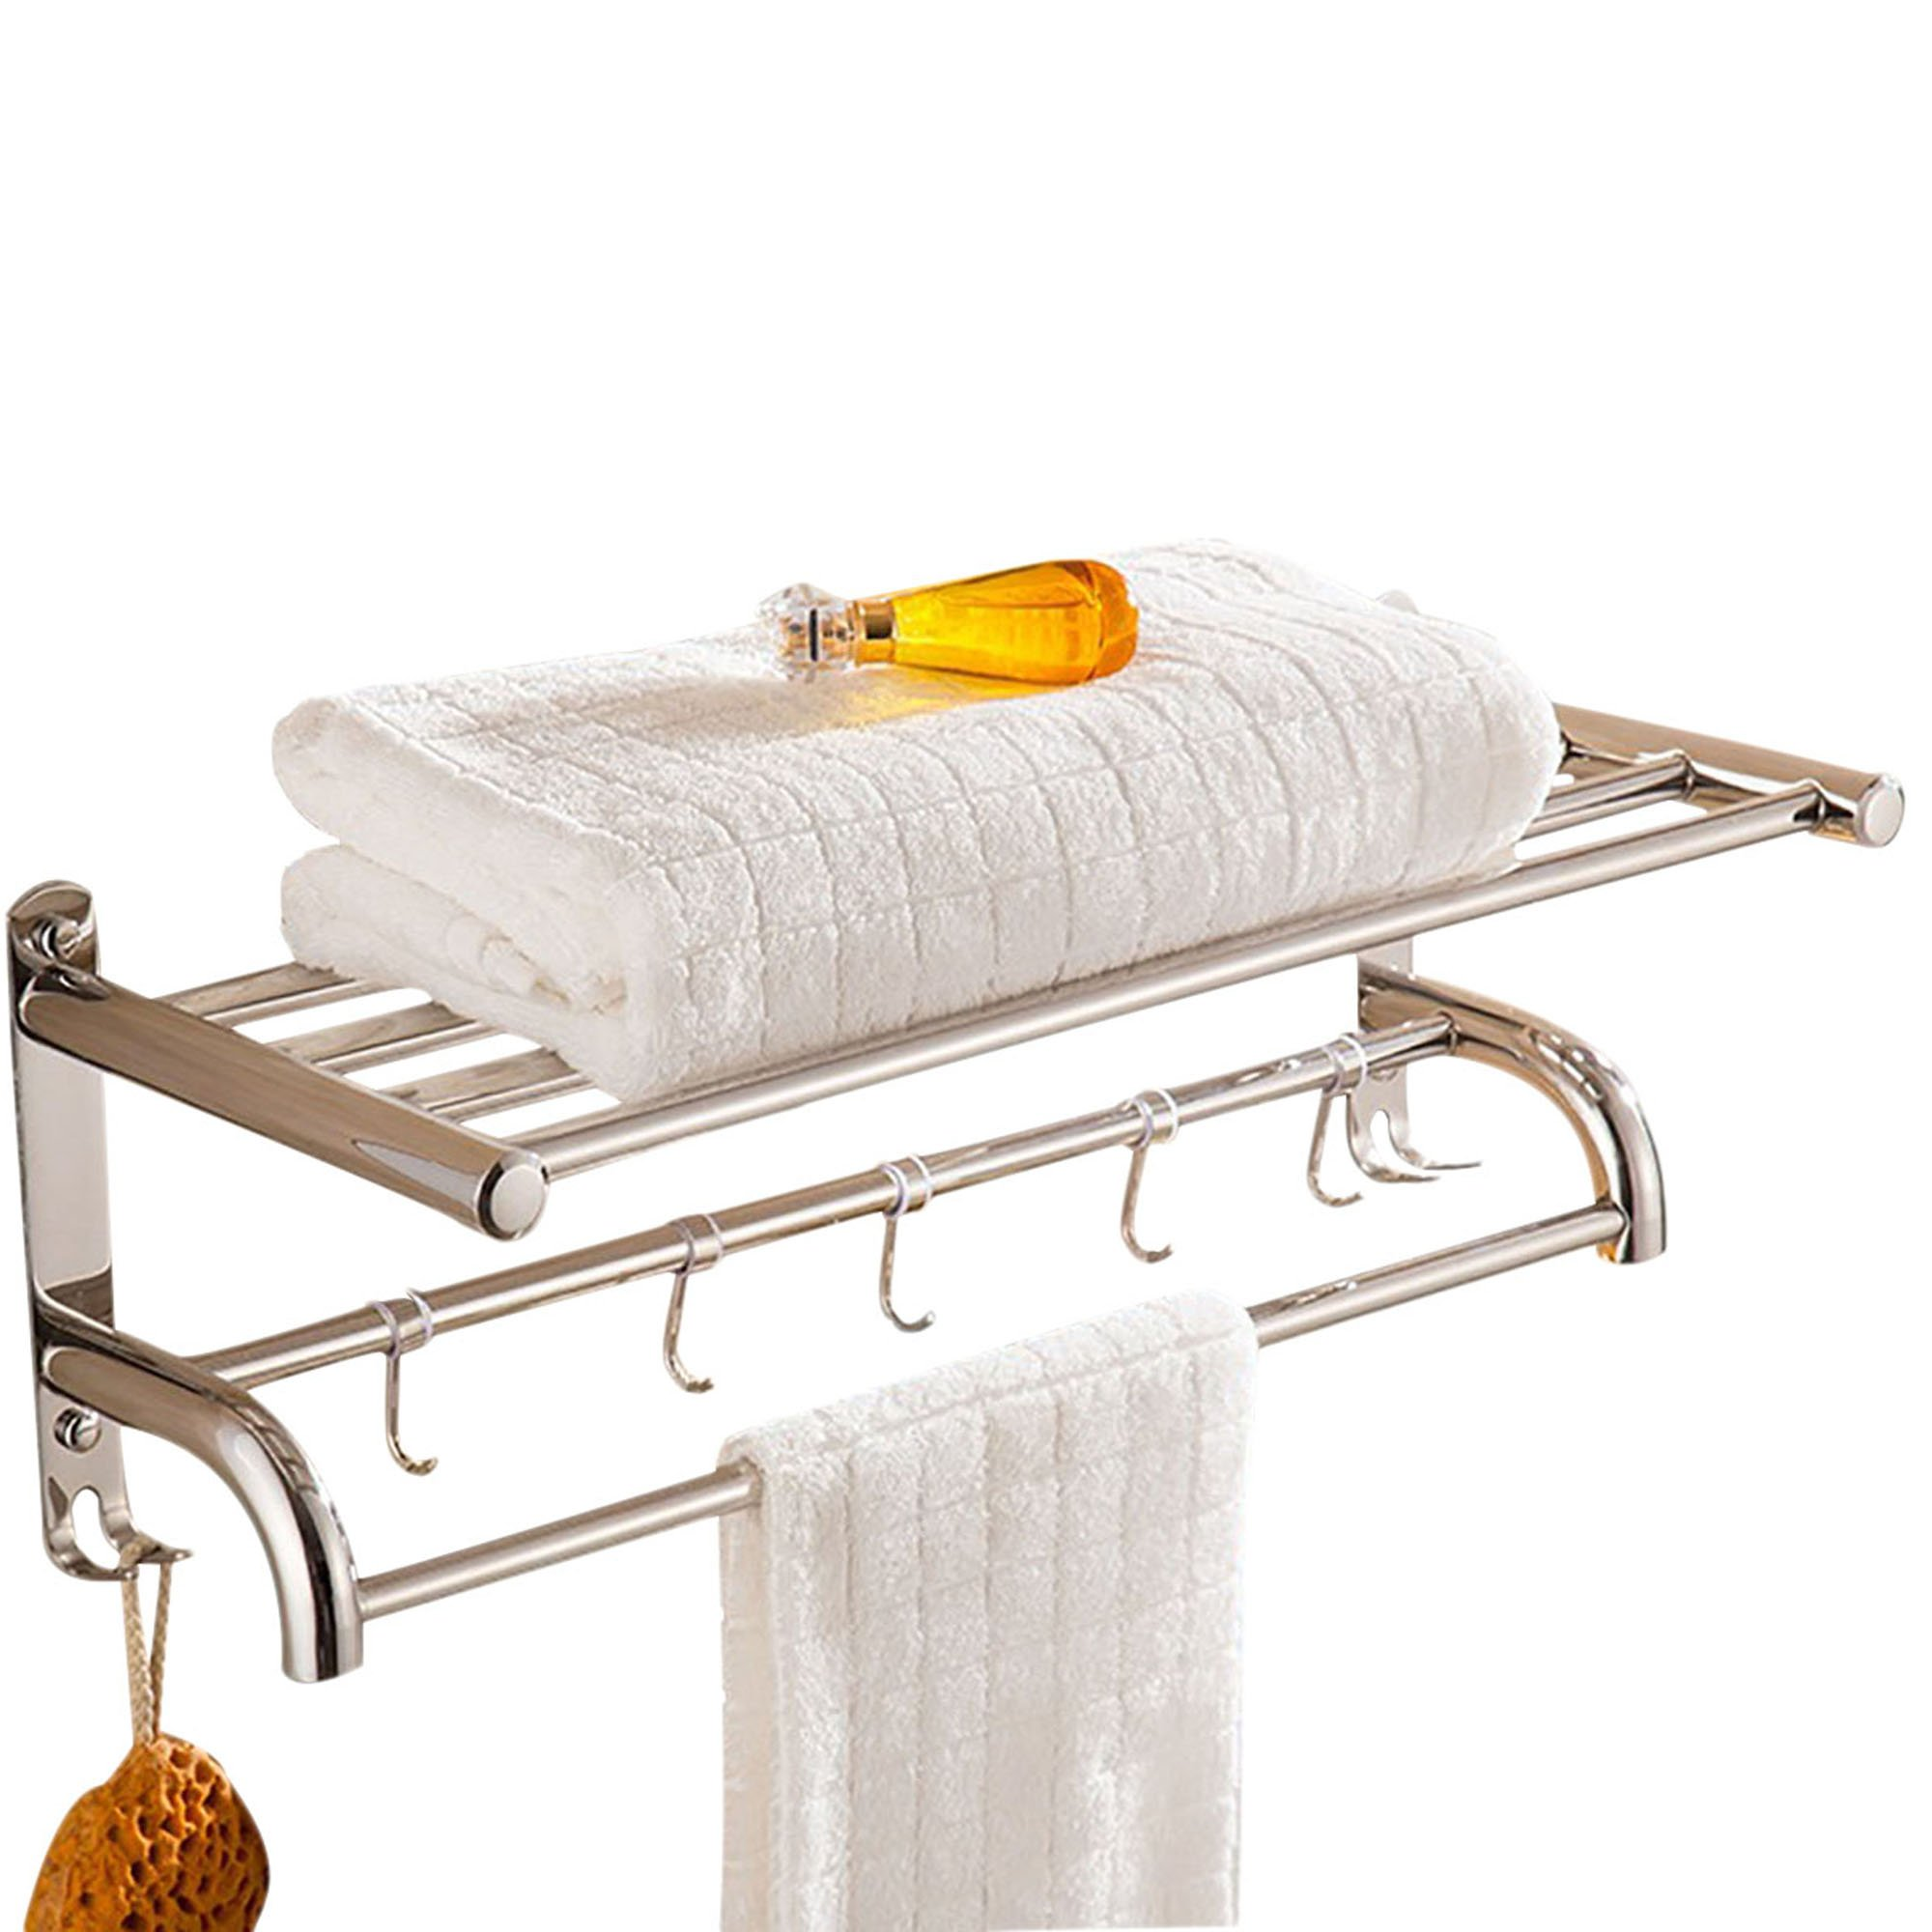 Absolutely Perfect Bathroom Double Tier Towel Shelf, 20'' Wall Mounted Shower Organizer Towel Racks, Polished Stainless Steel by Absolutely Perfect